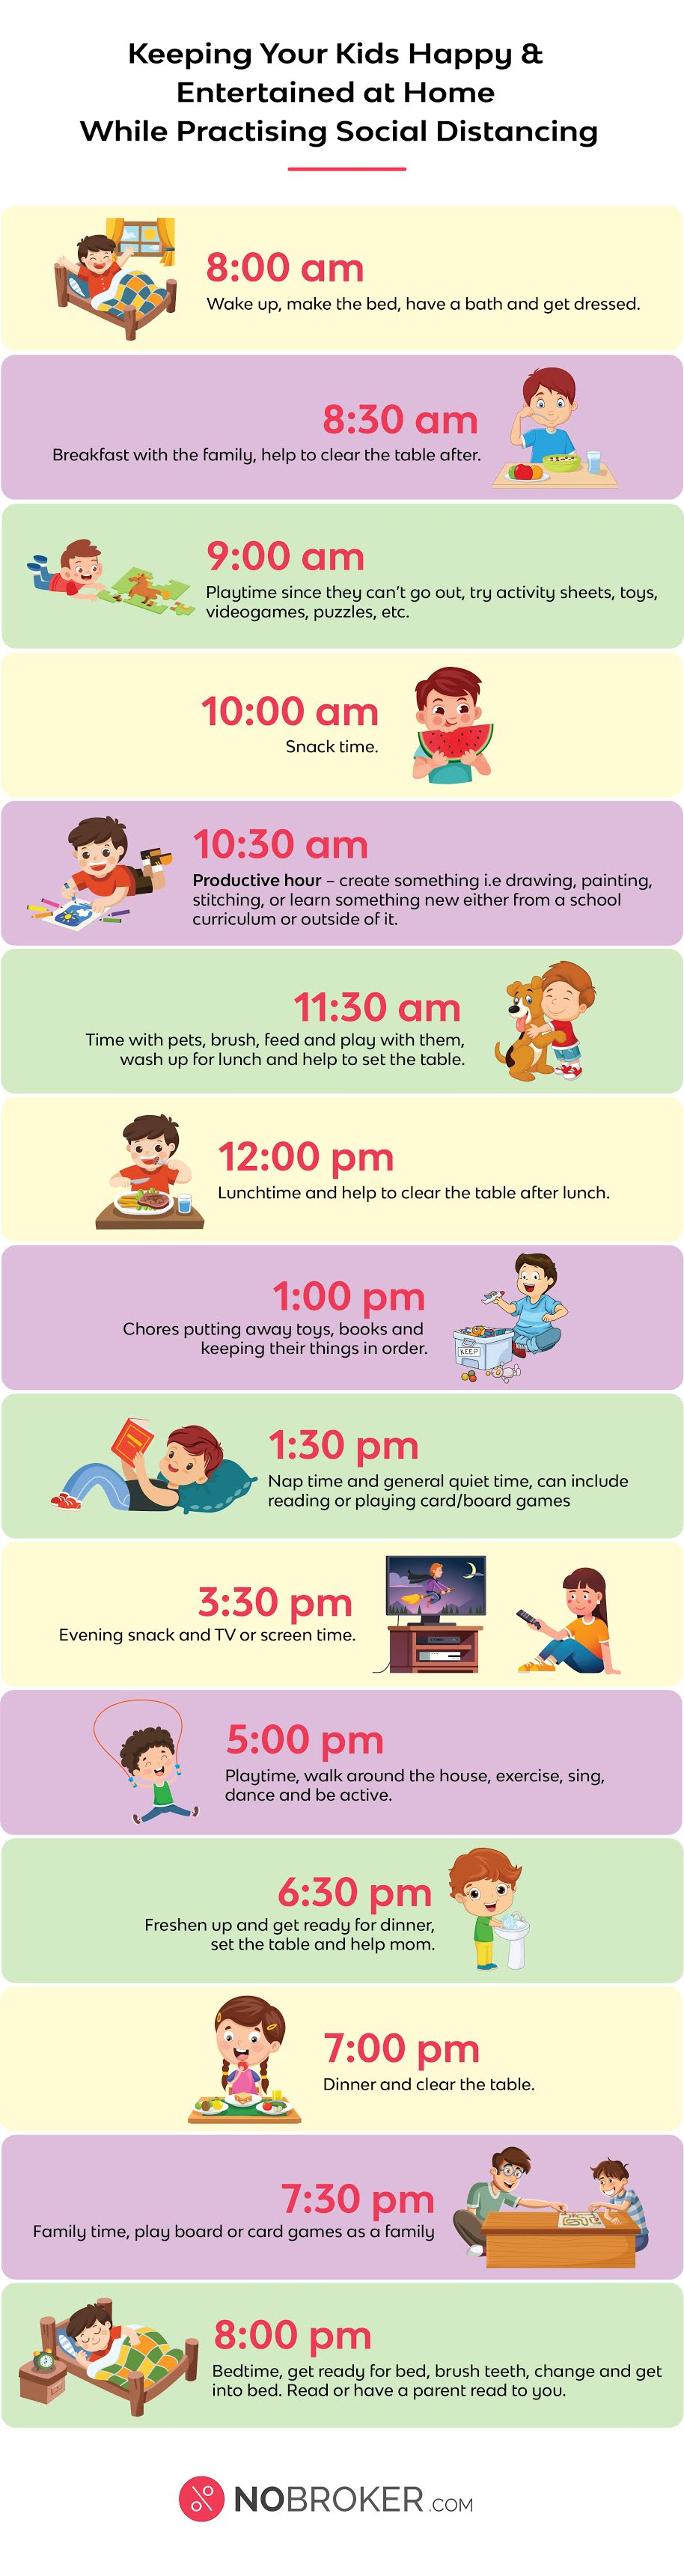 Keeping Your Kids Happy & Entertained at Home While Practising Social Distancing